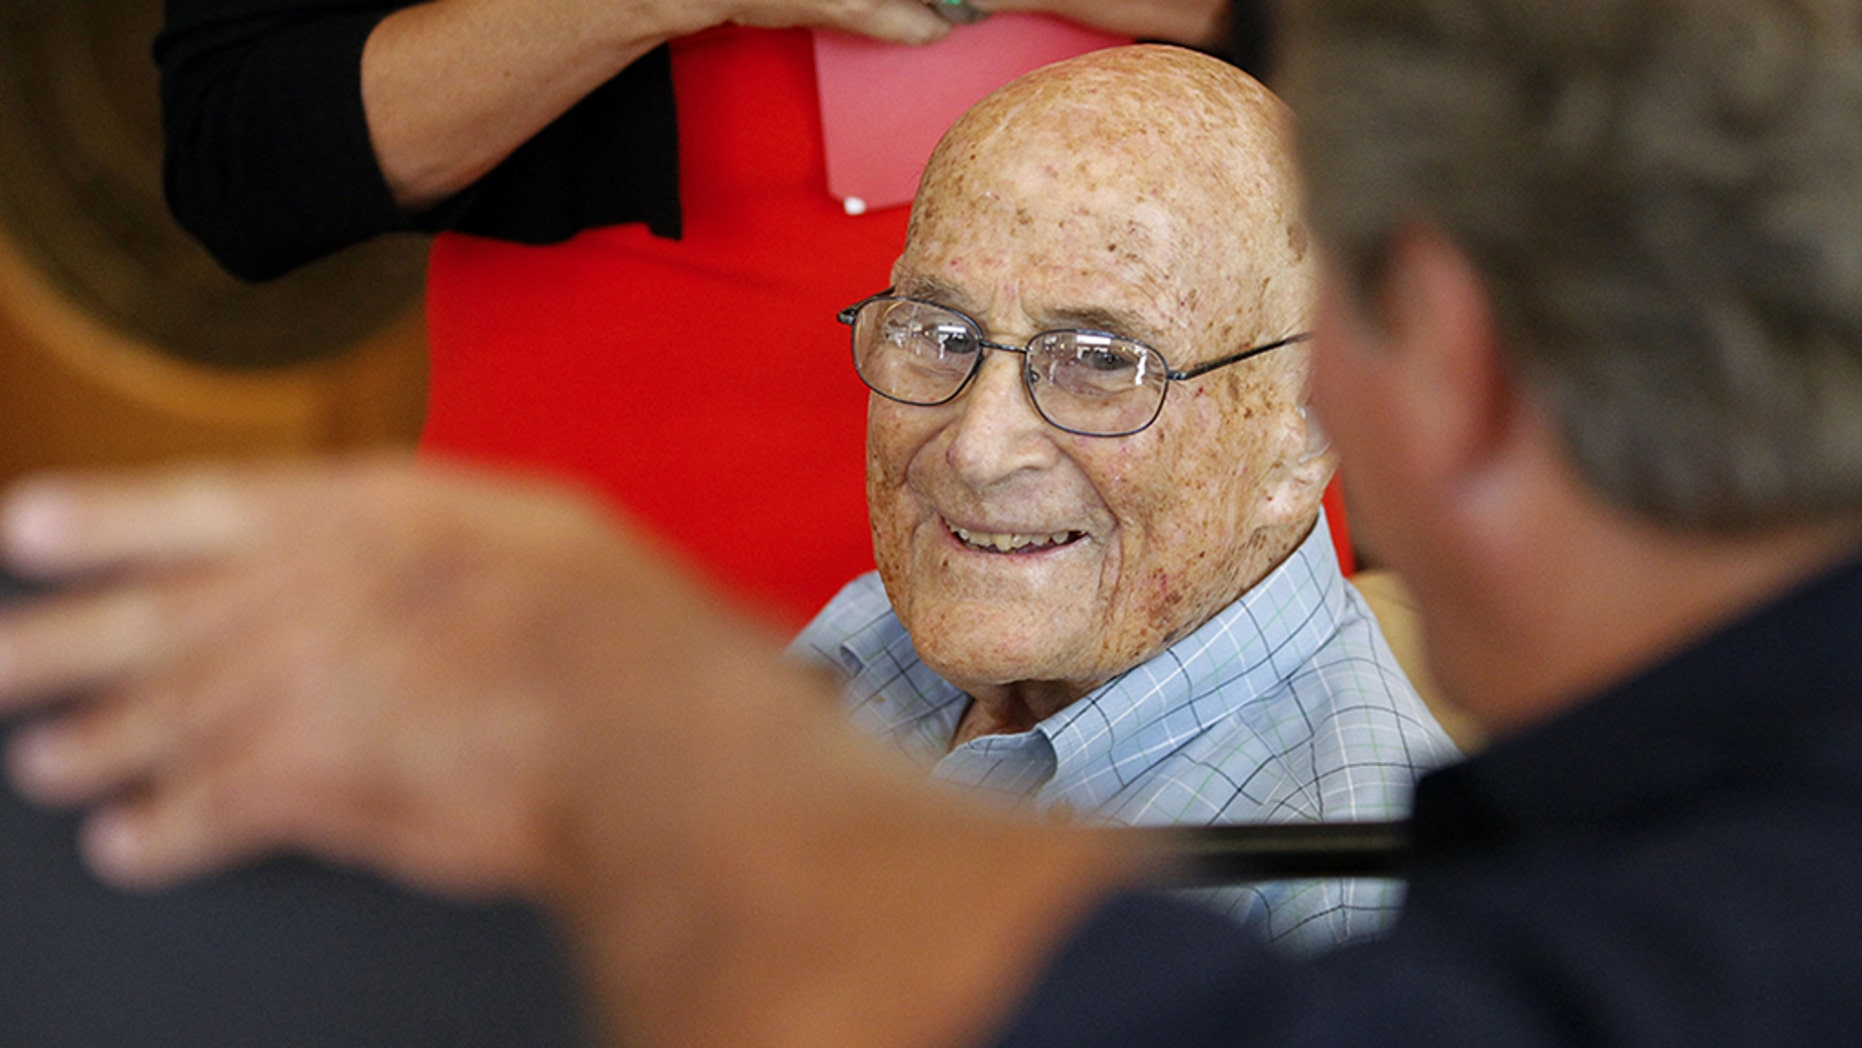 Bill Vogt, 105, who graduated from San Diego State University in 1935, received his diploma on Thursday, August 16, 2018.